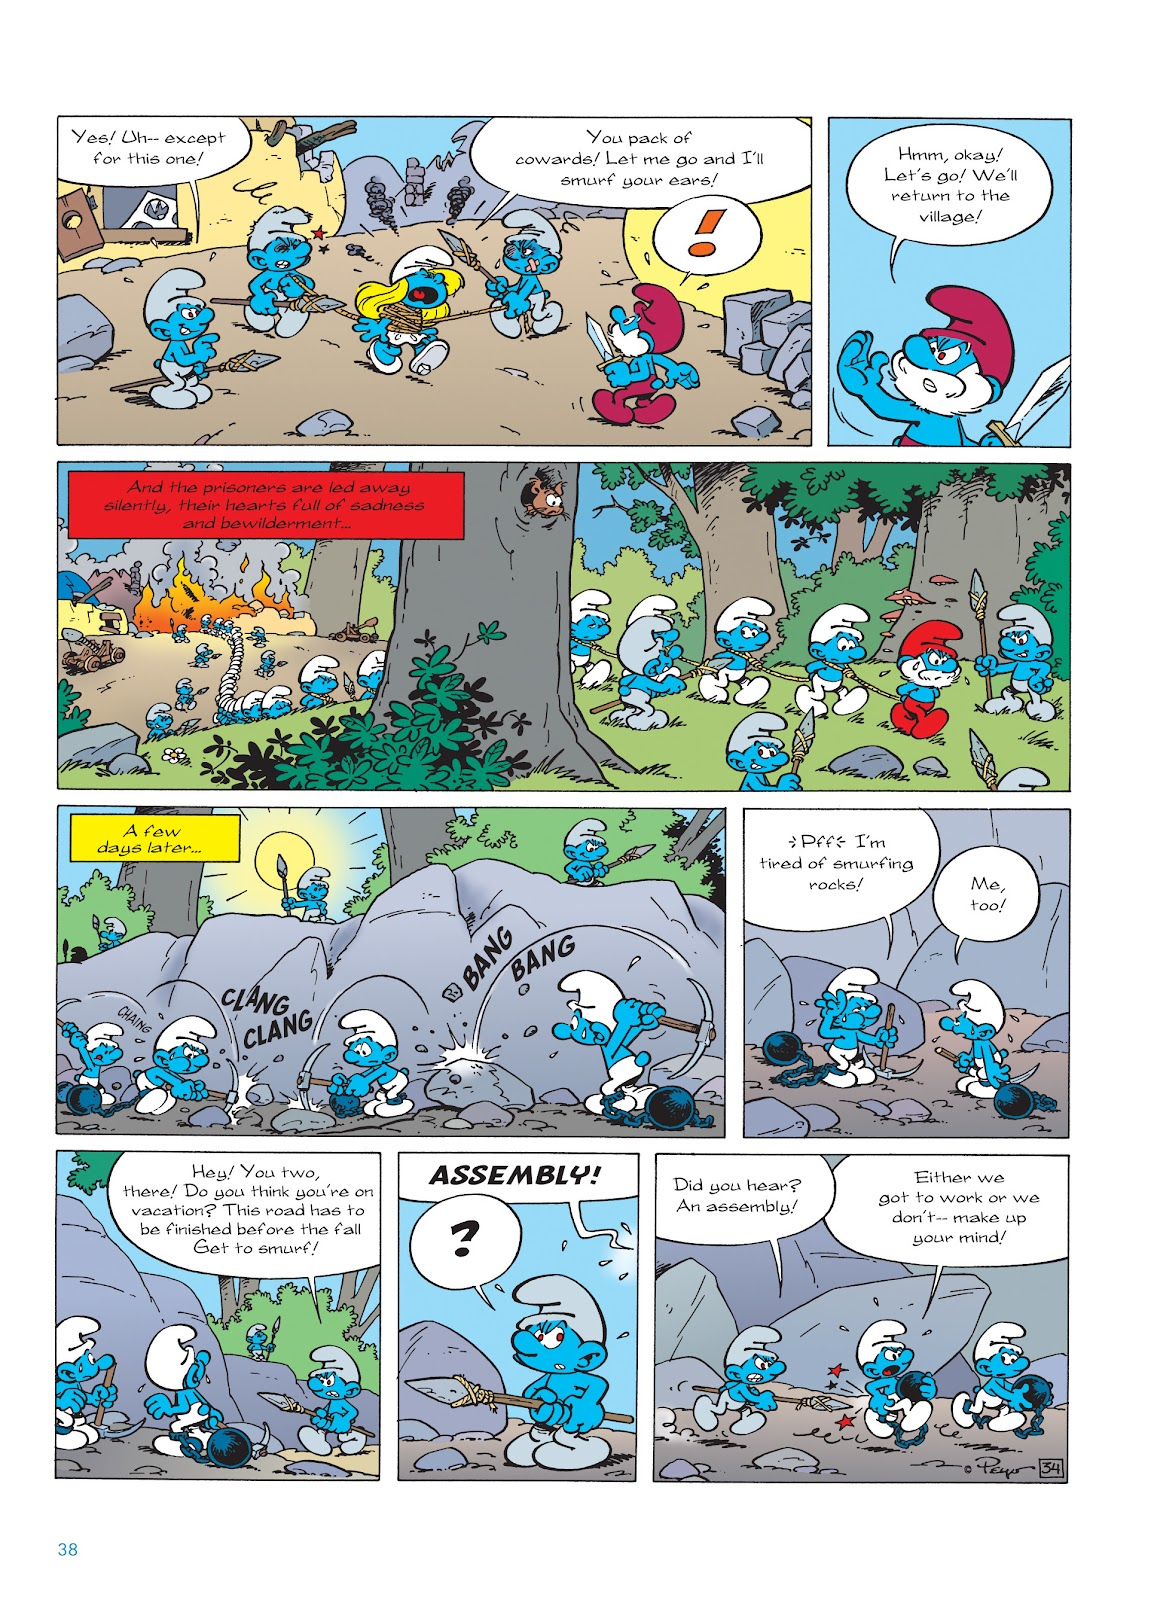 Read online The Smurfs comic -  Issue #22 - 39